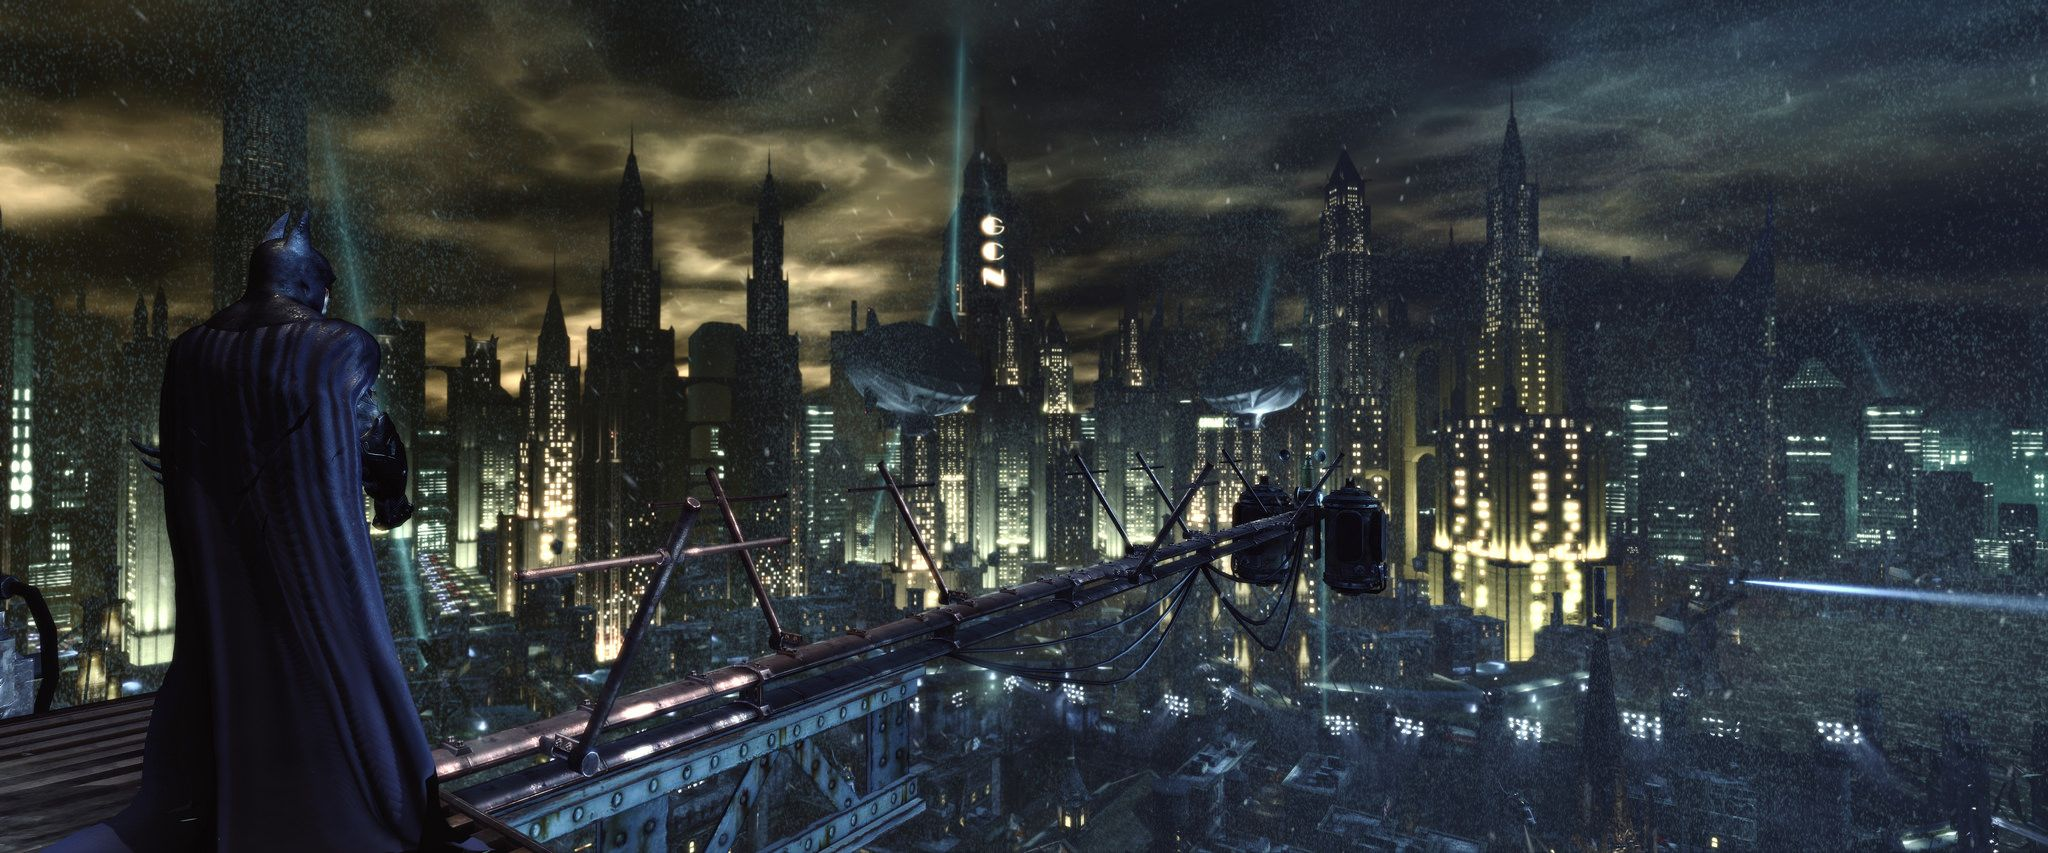 Batman Arkham City 3840x1080 Wallpaper Wallpaper Arkham City